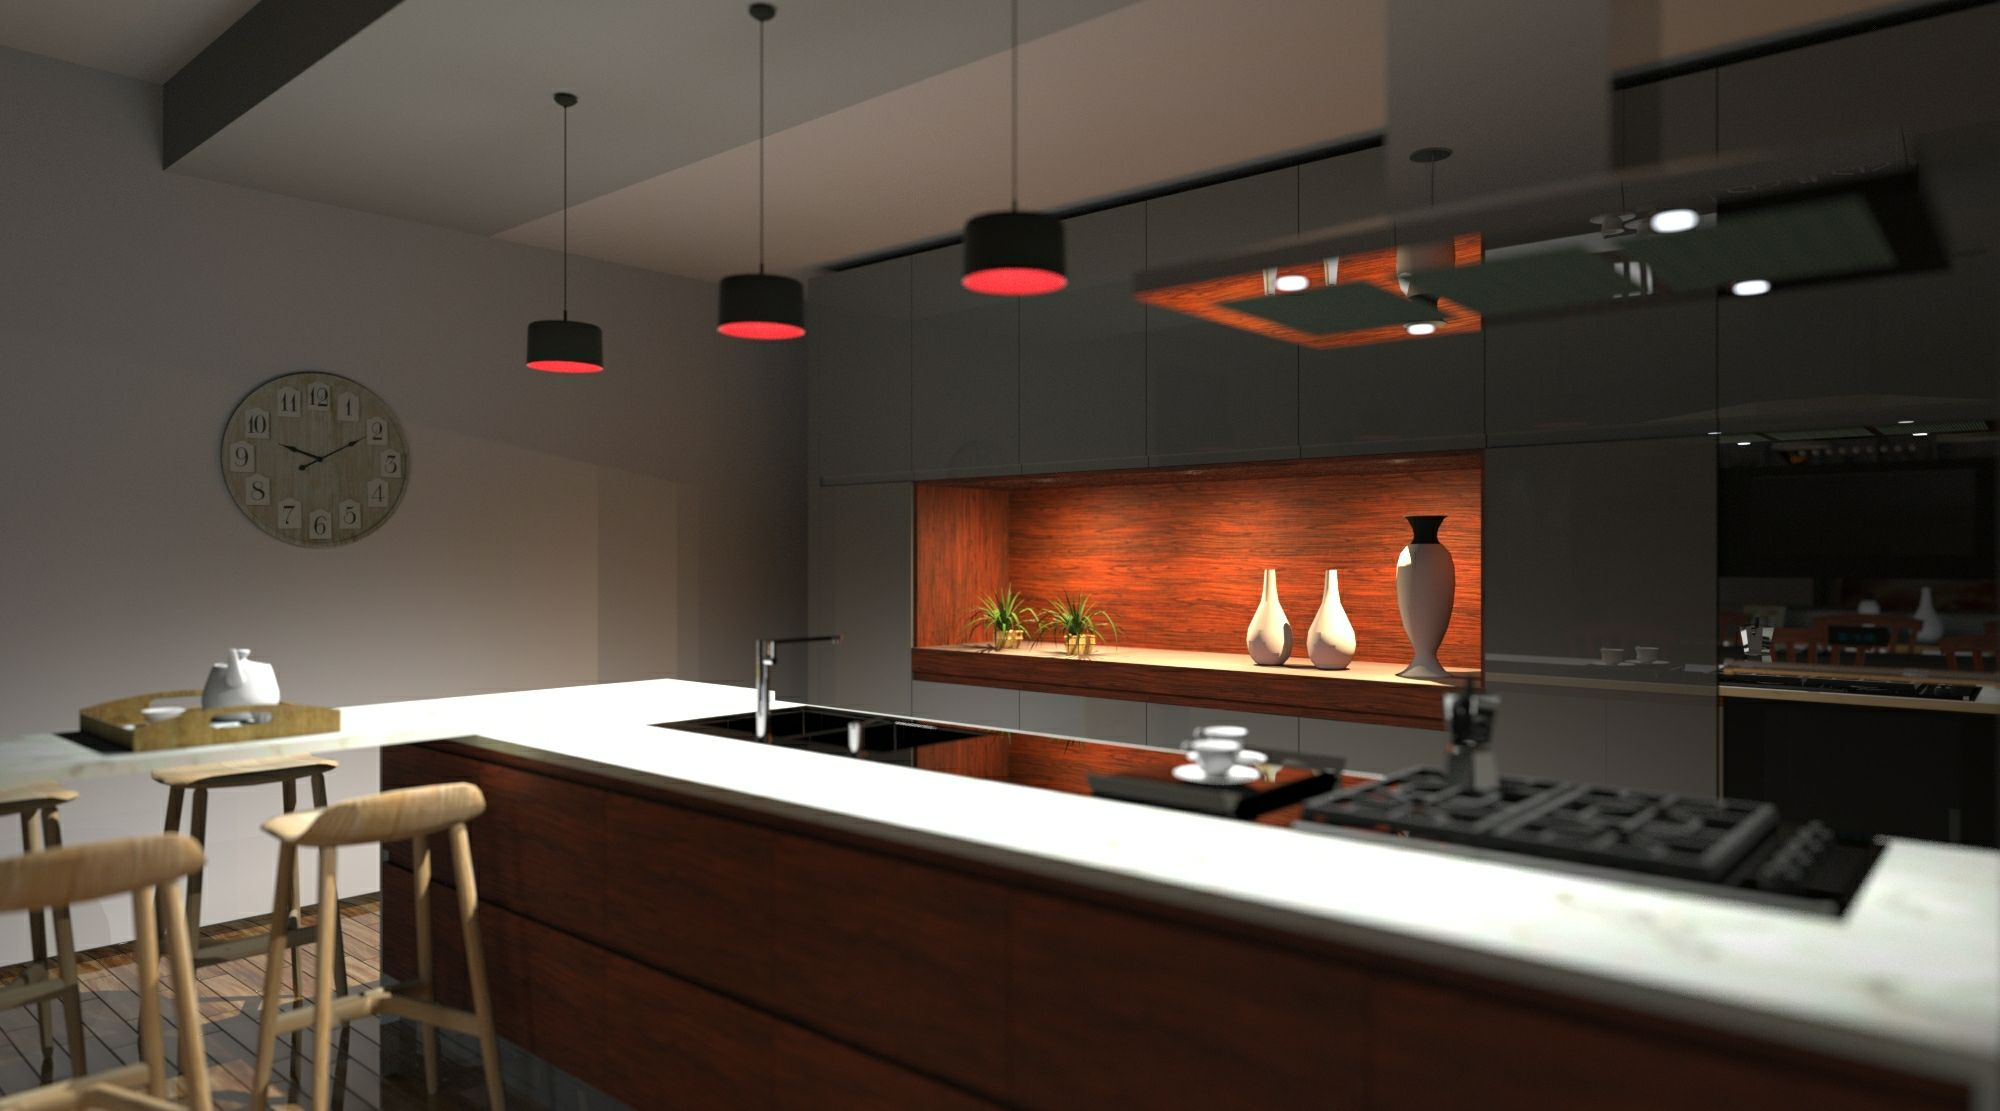 Kitchen_ProRender_How to design a kitchen_Edificius